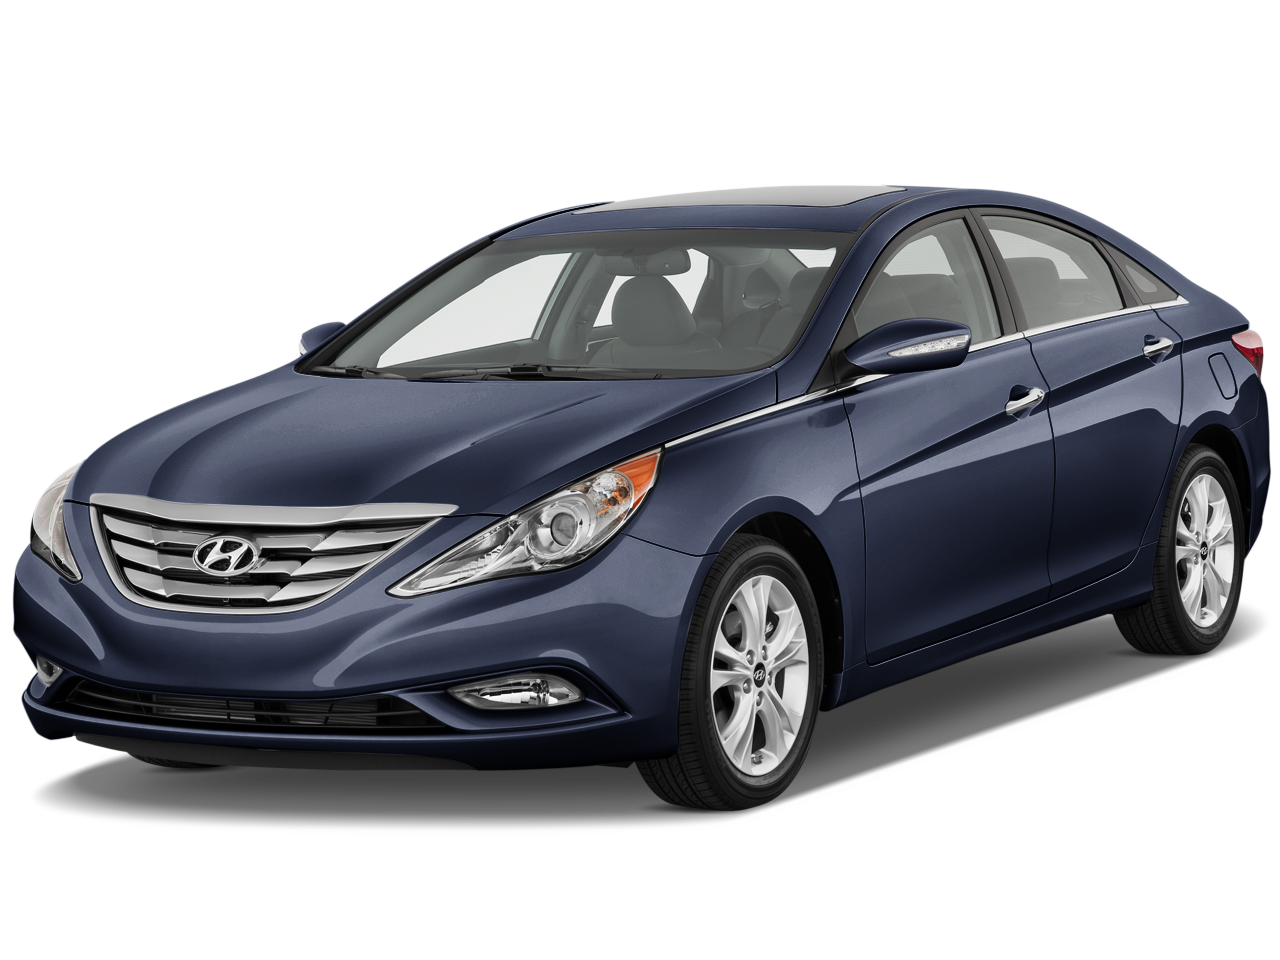 used certified 2014 hyundai sonata limited 20t near